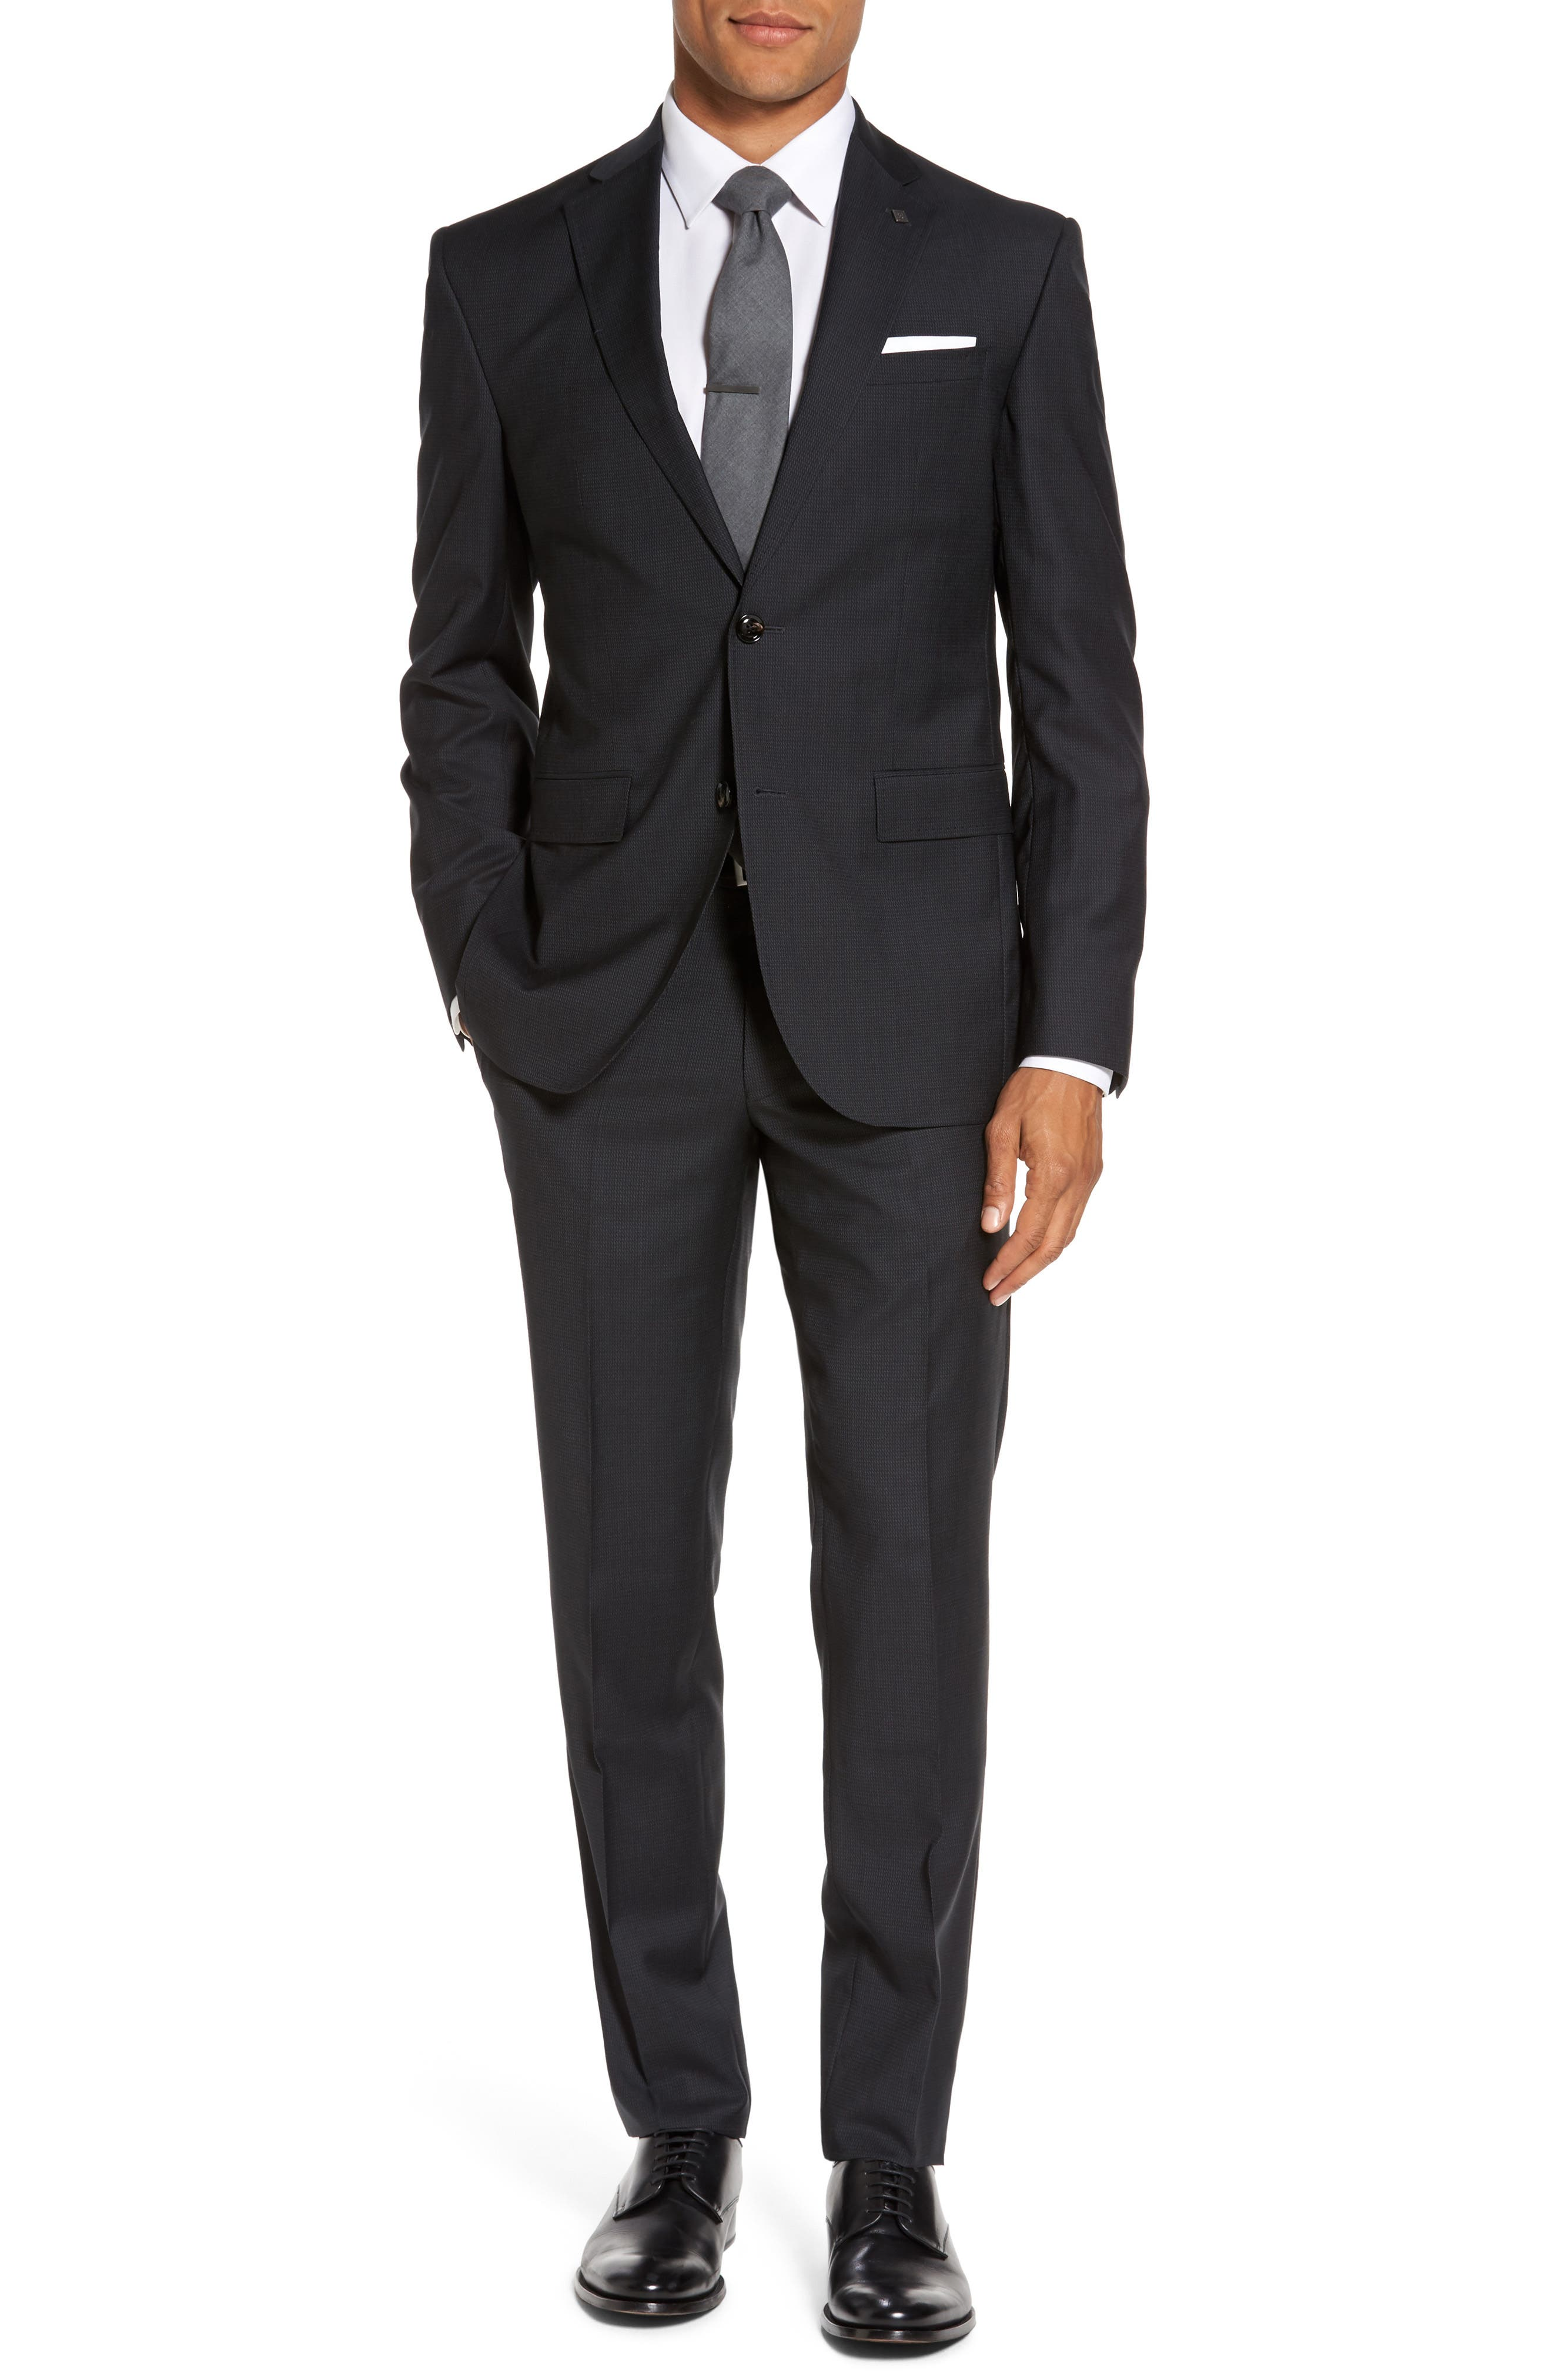 Main Image - Ted Baker London Roger Trim Fit Solid Wool Suit